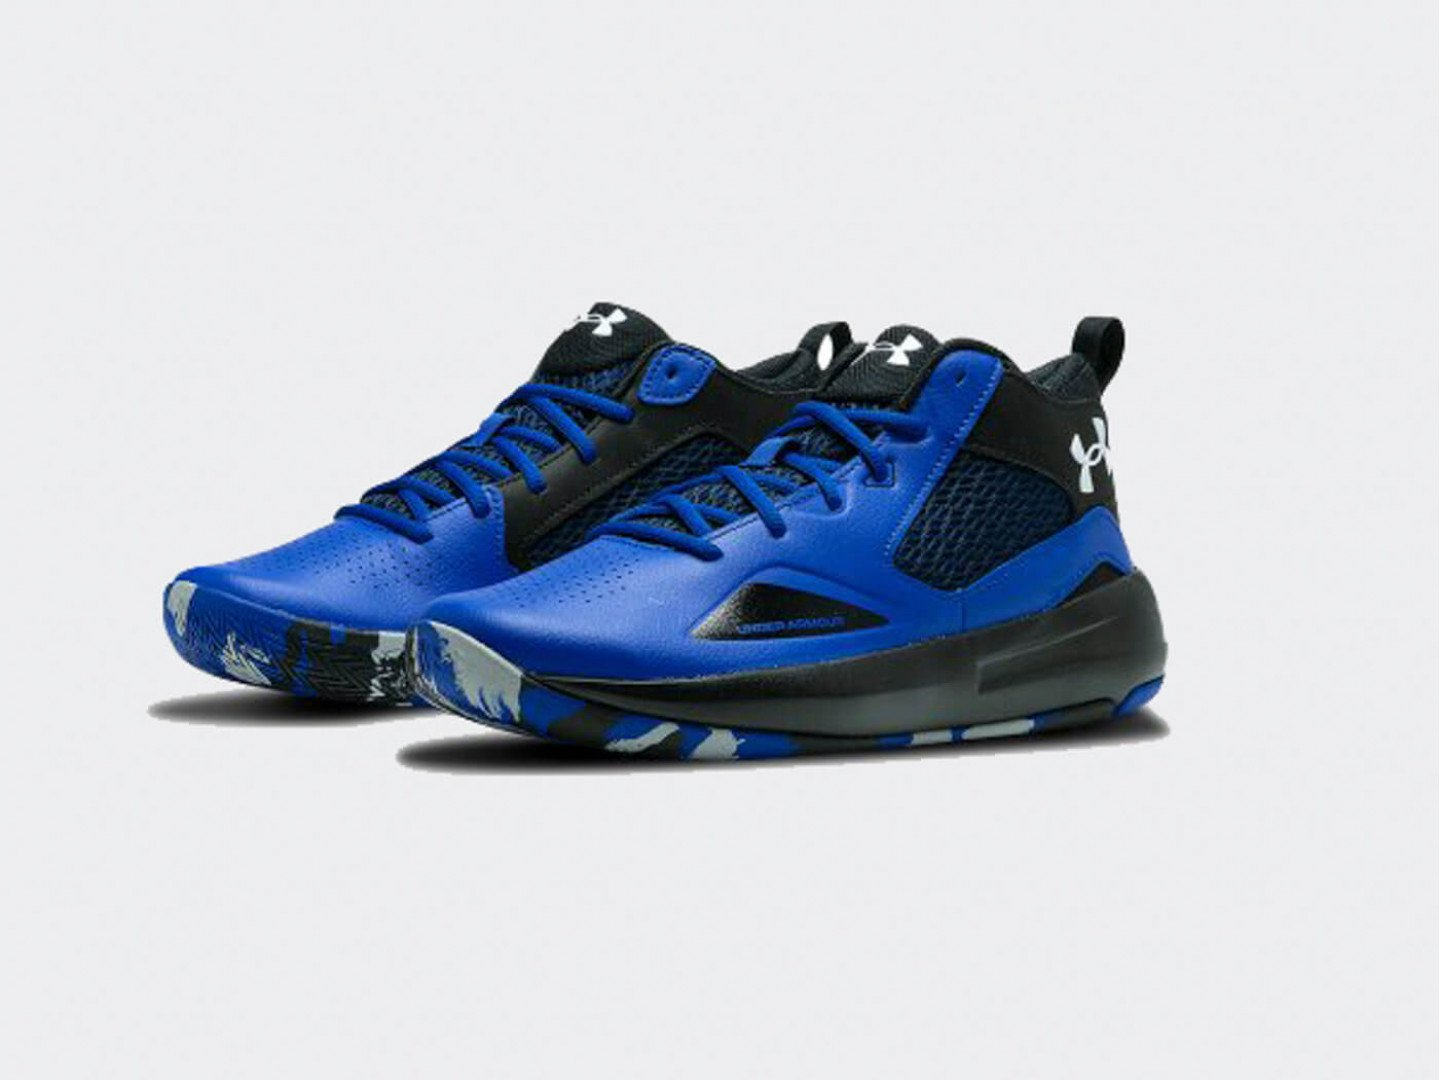 Кроссовки Under Armour Lockdown 5 / blue, black